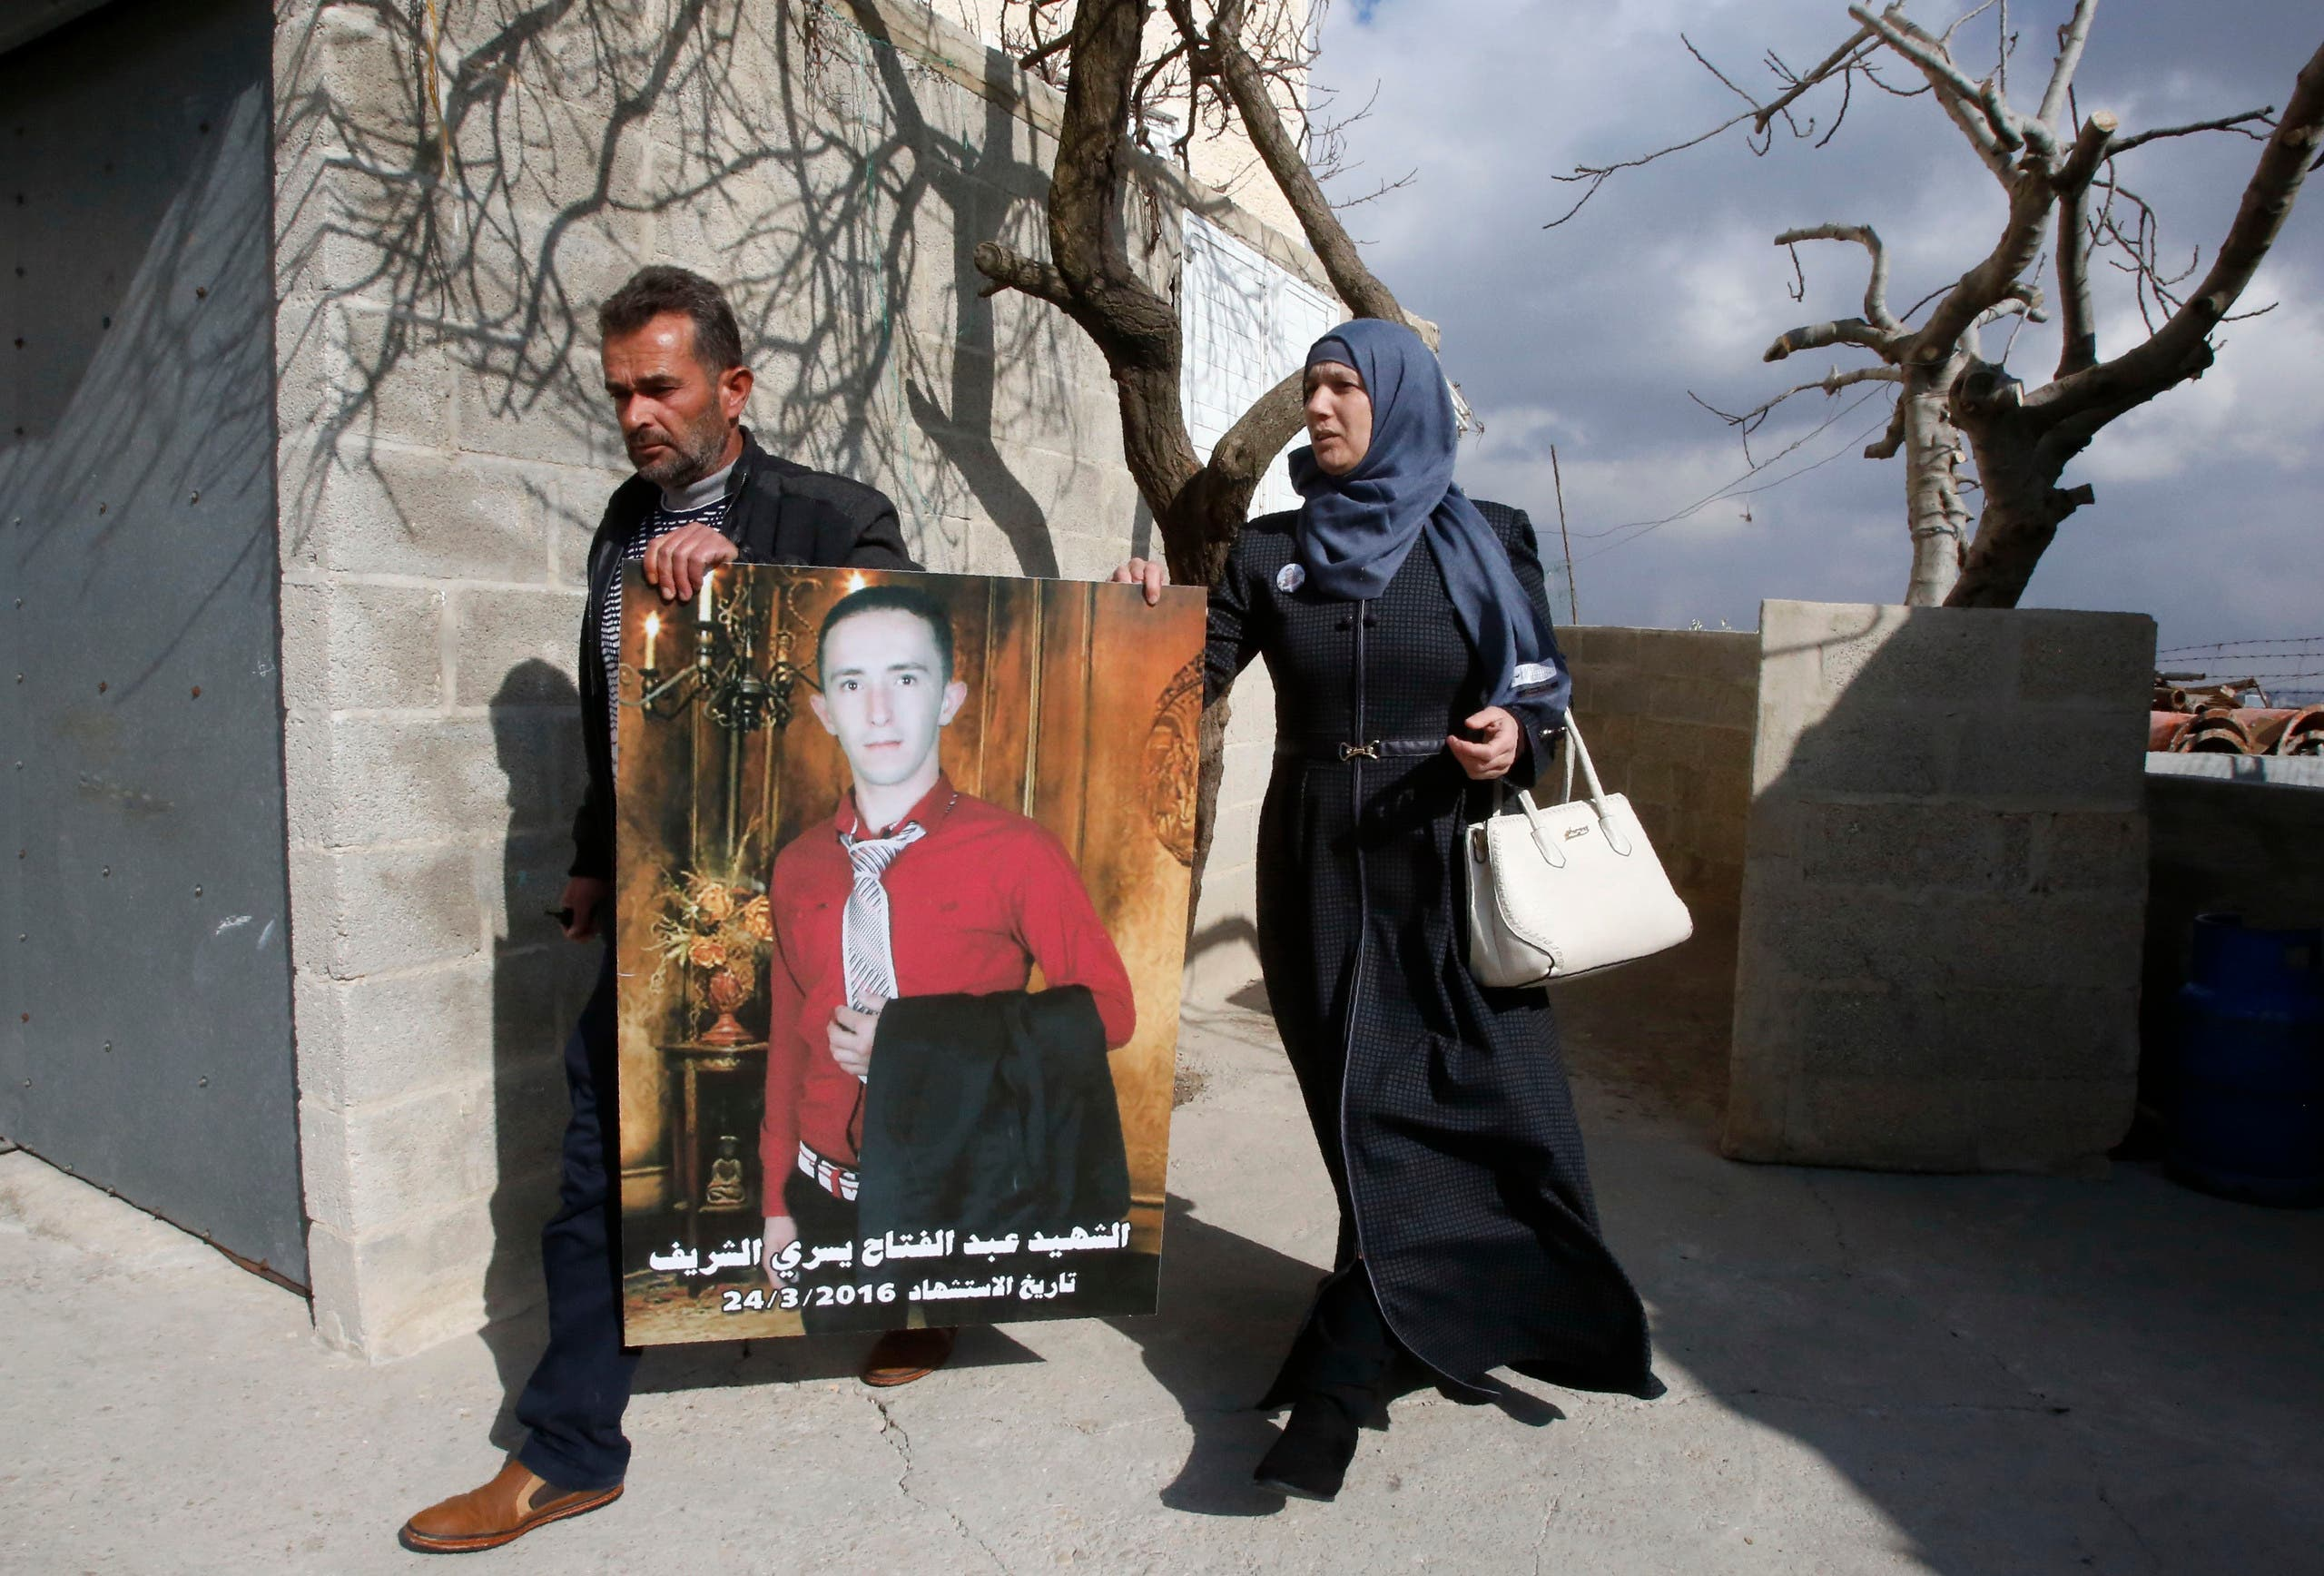 Rajaa and Yousri the mother and father of Abdul Fatah al-Sharif (portrait) head out into the streets in the West Bank town of Hebron on January 4, 2017, after watching on television the verdict of the trial of Israeli soldier Elor Azaria who killed their son. AFP